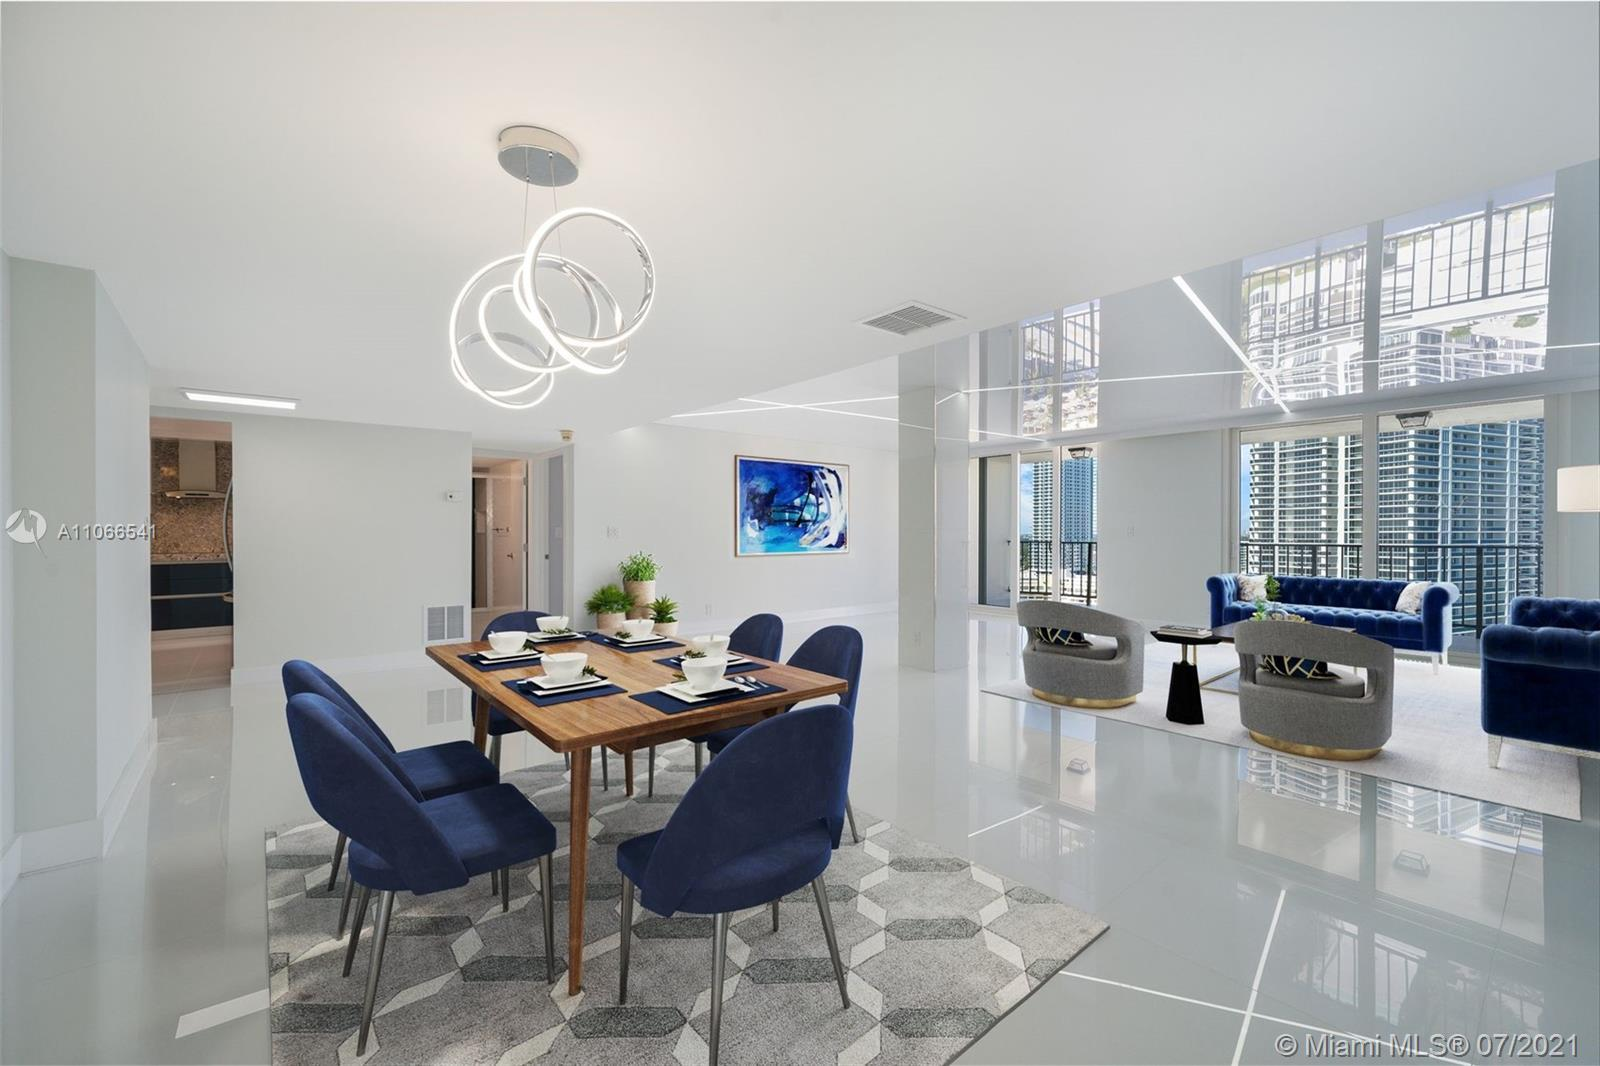 Masterfully remodeled Penthouse in the highly sought after La Mer Estates. Dramatic views greet you